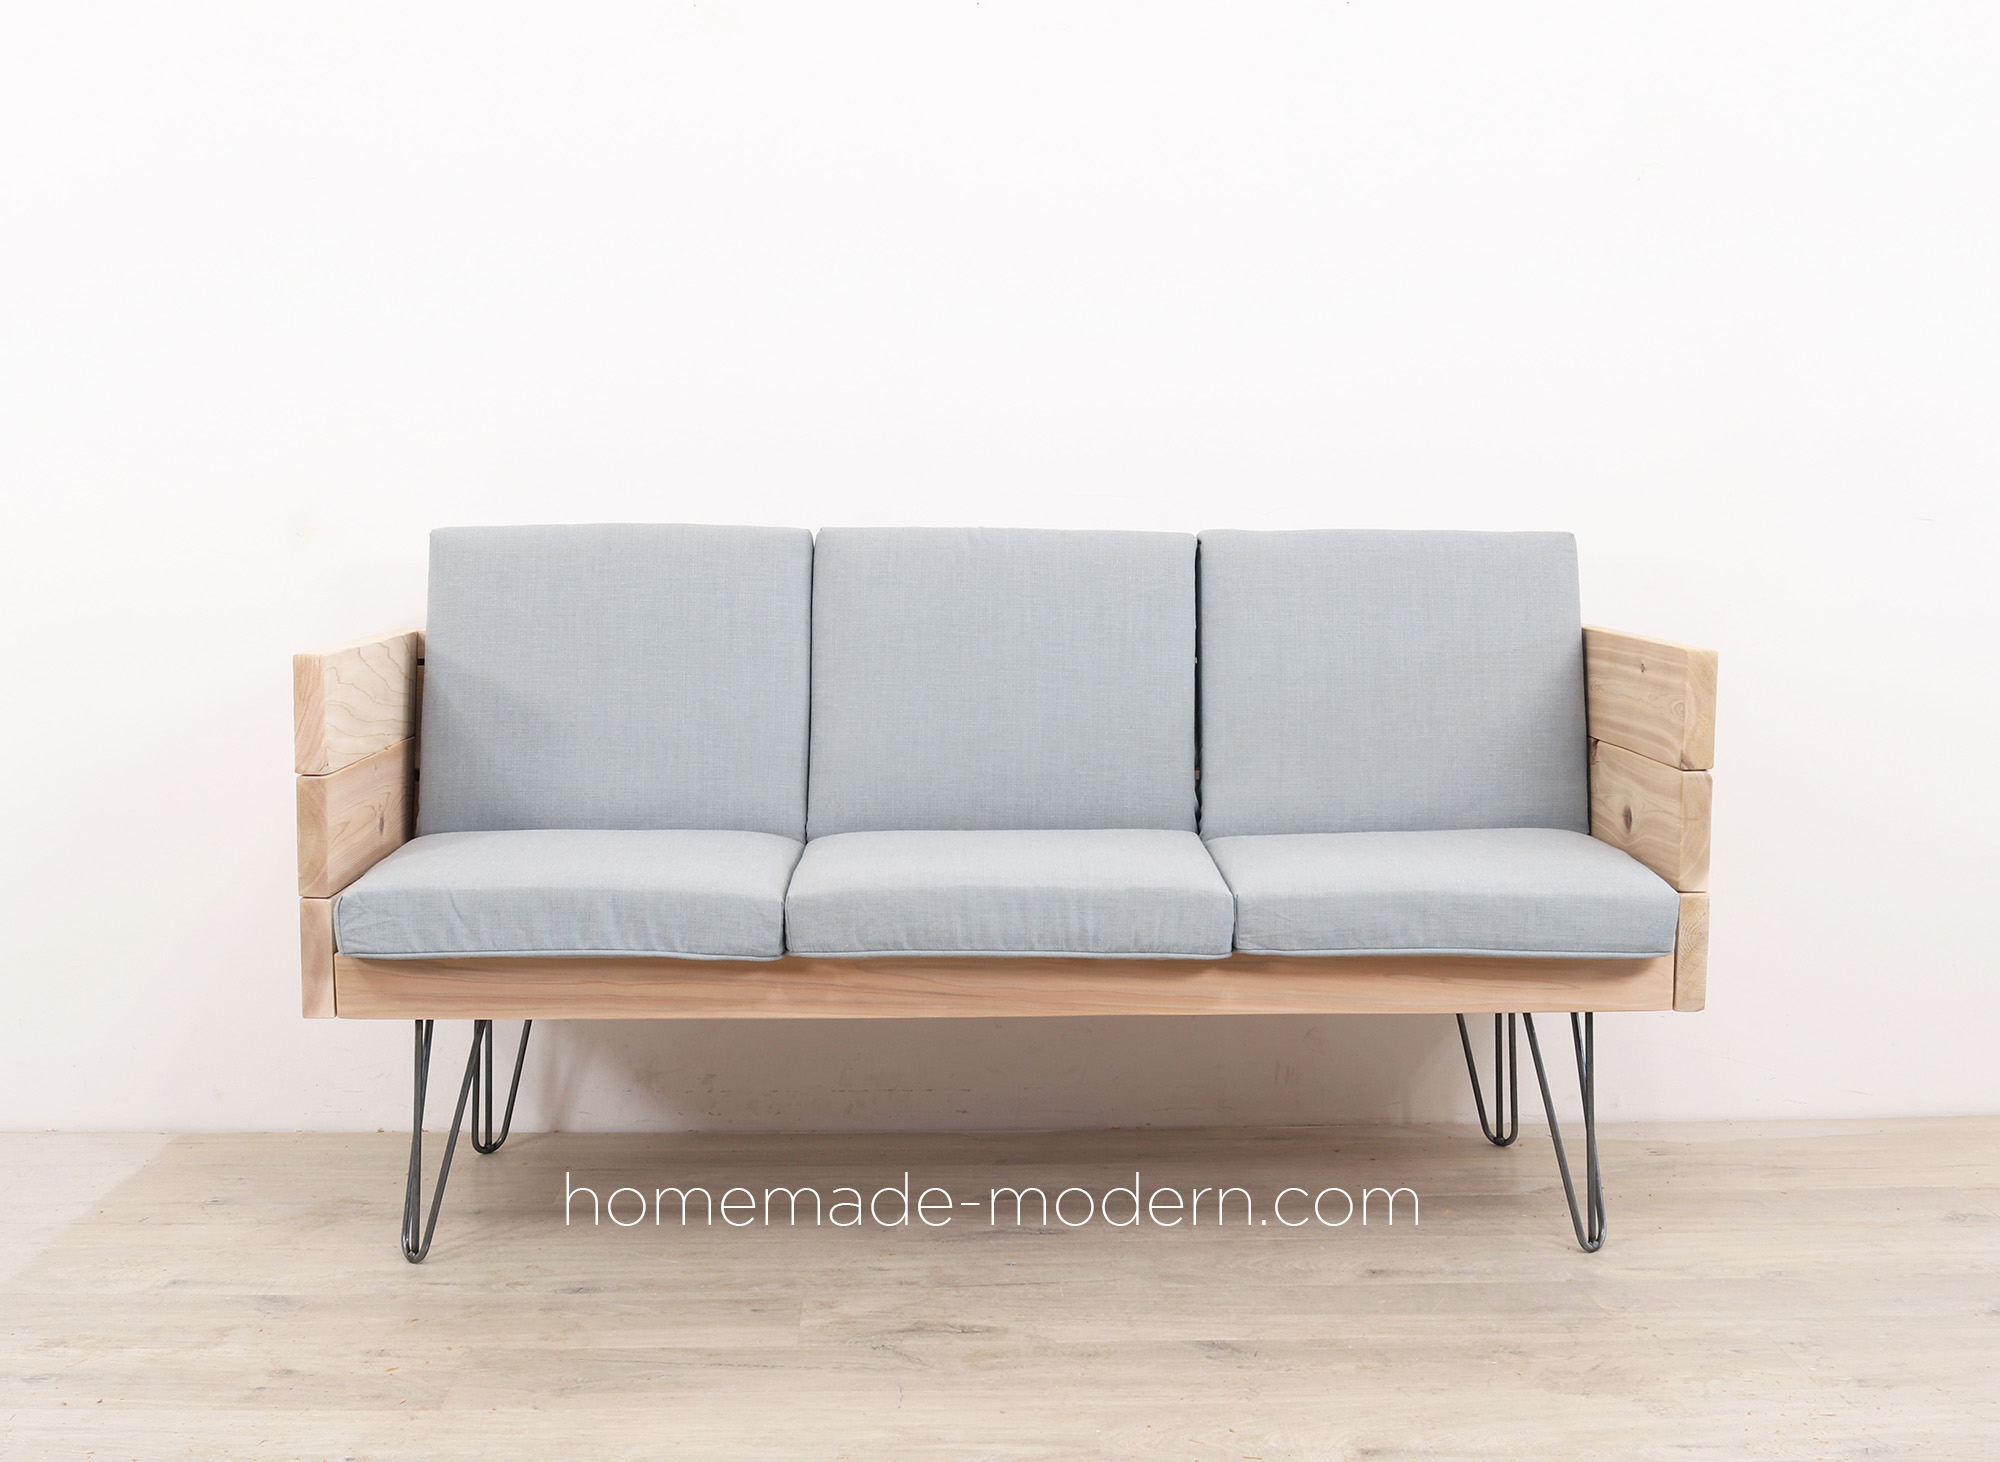 http://www.homemade-modern.com/wp-content/uploads/2019/04/outdoorsofa2-final1.jpg